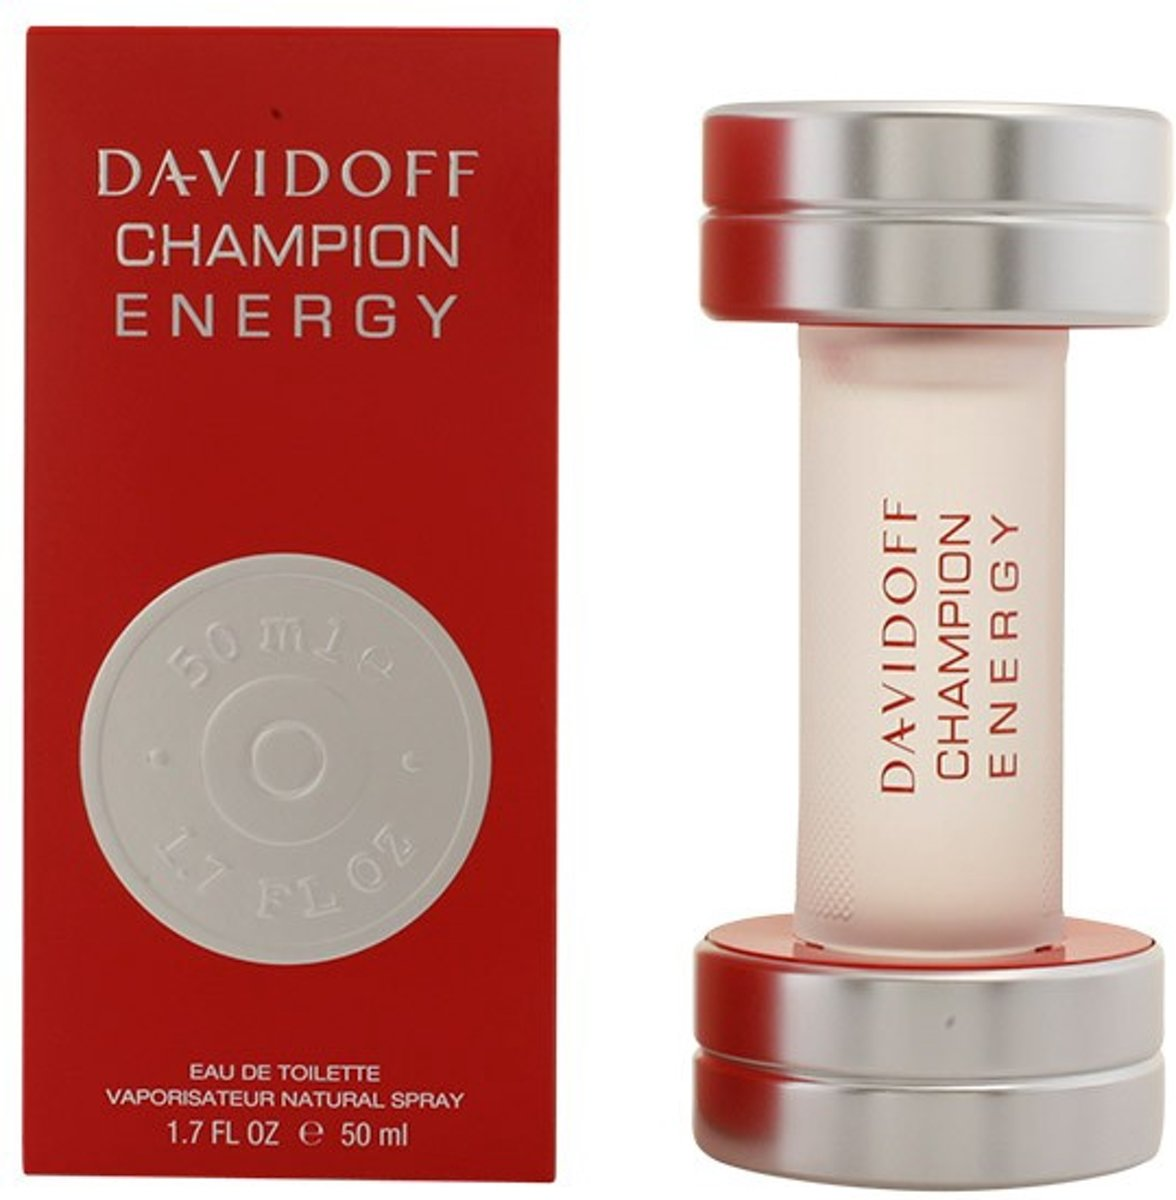 MULTI BUNDEL 2 stuks CHAMPION ENERGY eau de toilette spray 50 ml